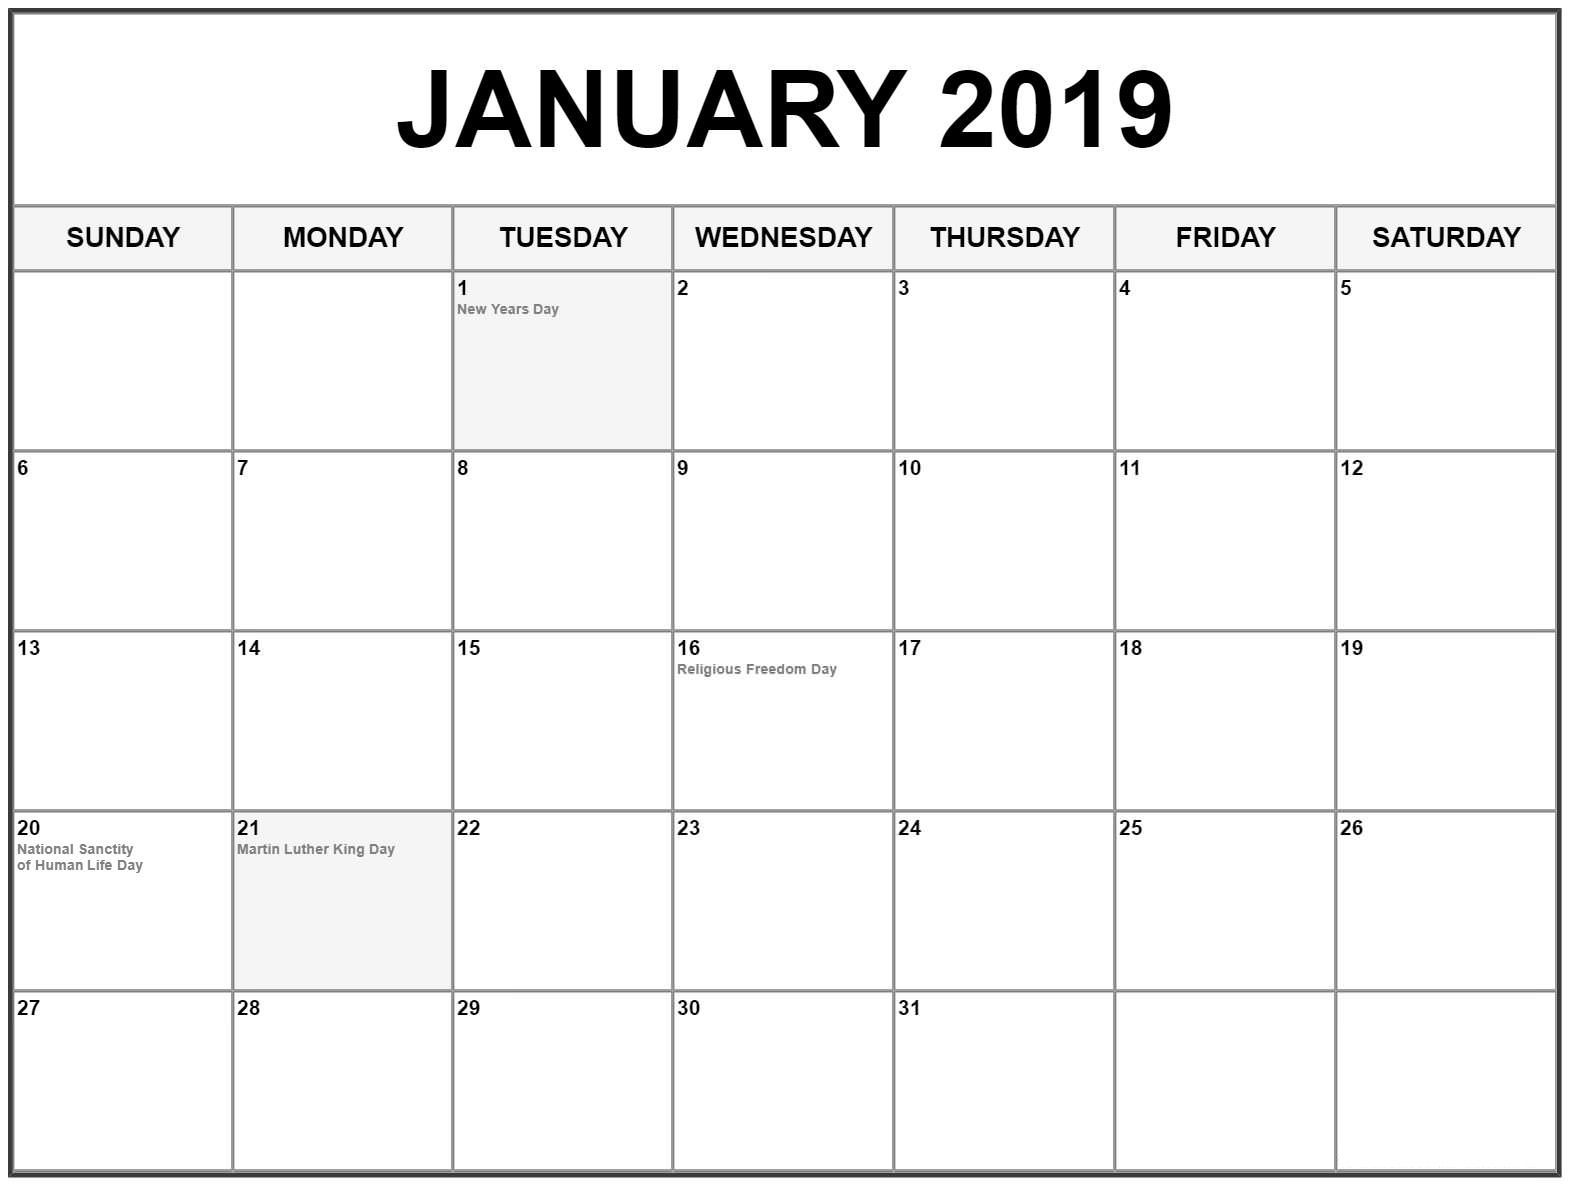 January 2019 Calendar Us Holidays January 2019 Calendar #Editable Template For Word | Free Printable